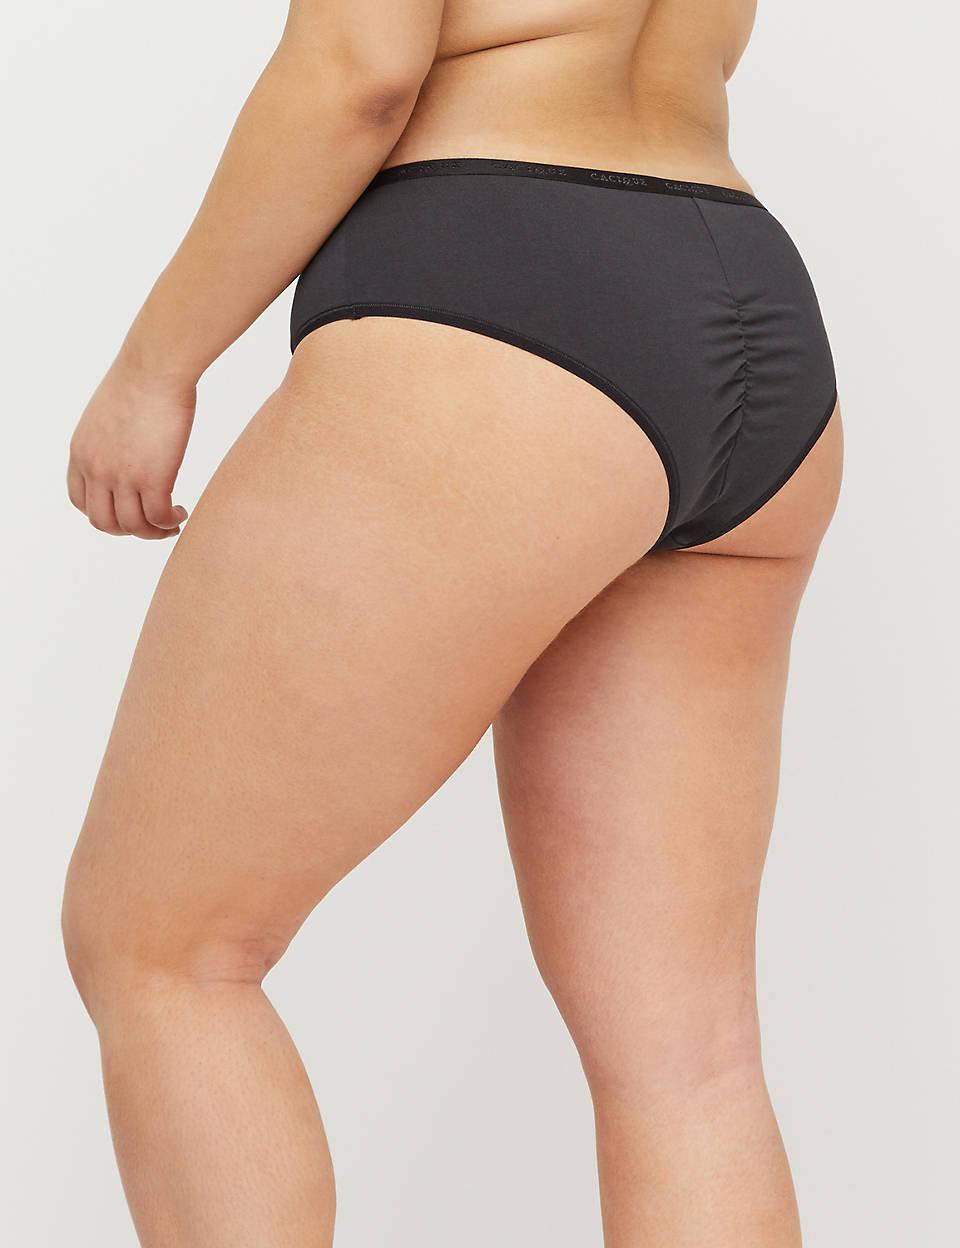 """<h3><a href=""""https://cacique.lanebryant.com/cotton-ruched-back-cheeky-panty/prd-347469#color/0000089324"""" rel=""""nofollow noopener"""" target=""""_blank"""" data-ylk=""""slk:Cacique Cotton Ruched-Back Cheeky Panty"""" class=""""link rapid-noclick-resp"""">Cacique Cotton Ruched-Back Cheeky Panty</a></h3><br><br><strong>Best Plus-Sized Cheeky Pair</strong><br><br>The recent rise — get it? — of the """"cheeky"""" underpant has been welcomed by those of us who want less-than-total coverage, but have yet to board the train to Thongtown, USA. Plus-size customers are very satisfied with this seamed, cheek-baring style.<br><br><strong>The Hype: </strong>5 out of 5 stars; 14 reviews on <a href=""""https://cacique.lanebryant.com/cotton-ruched-back-cheeky-panty/prd-347469#color/0000089324"""" rel=""""nofollow noopener"""" target=""""_blank"""" data-ylk=""""slk:LaneBryant.com"""" class=""""link rapid-noclick-resp"""">LaneBryant.com</a><br><br><strong>What They Are Saying: </strong>""""They fit great if you like less backside coverage. I can't wear most full coverage styles because they have too much fabric in the back and tend to bunch or ride up. These are the perfect middle ground between a thong and a hipster or brief."""" — Emily83, LaneBryant.com reviewer<br><br><strong>Cacique</strong> Cotton Ruched-Back Cheeky Panty, $, available at <a href=""""https://go.skimresources.com/?id=30283X879131&url=https%3A%2F%2Fcacique.lanebryant.com%2Fcotton-ruched-back-cheeky-panty%2Fprd-347469%23color%2F0000089324"""" rel=""""nofollow noopener"""" target=""""_blank"""" data-ylk=""""slk:Lane Bryant"""" class=""""link rapid-noclick-resp"""">Lane Bryant</a>"""